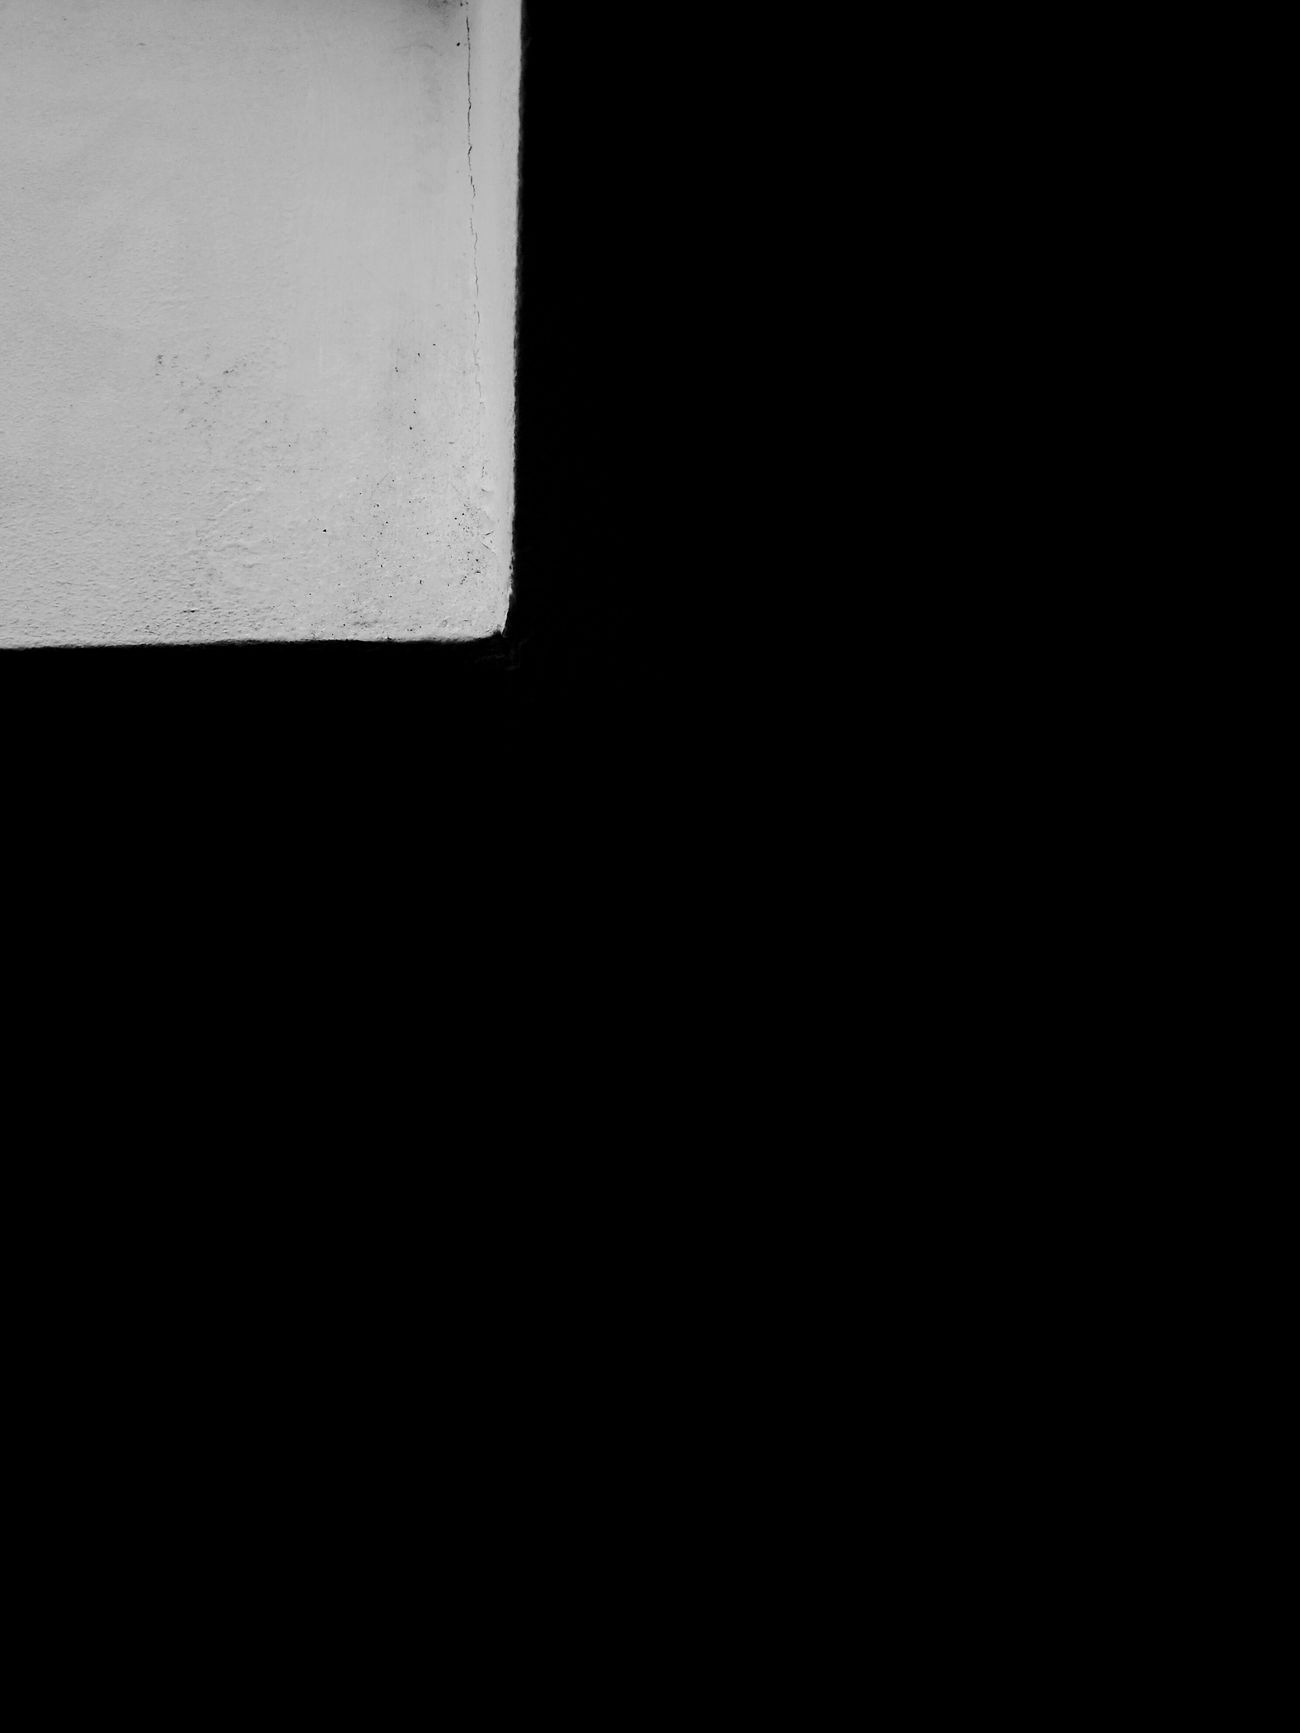 Architectural Feature Black And White Bnw Other Perspectives EyeEm Bnw Built Structure Architecture Window Angles Backgrounds Geometric Shape Full Frame Selective Focus Bnwphotography No Edit/no Filter EyeEm Gallery Part 3 Darkness